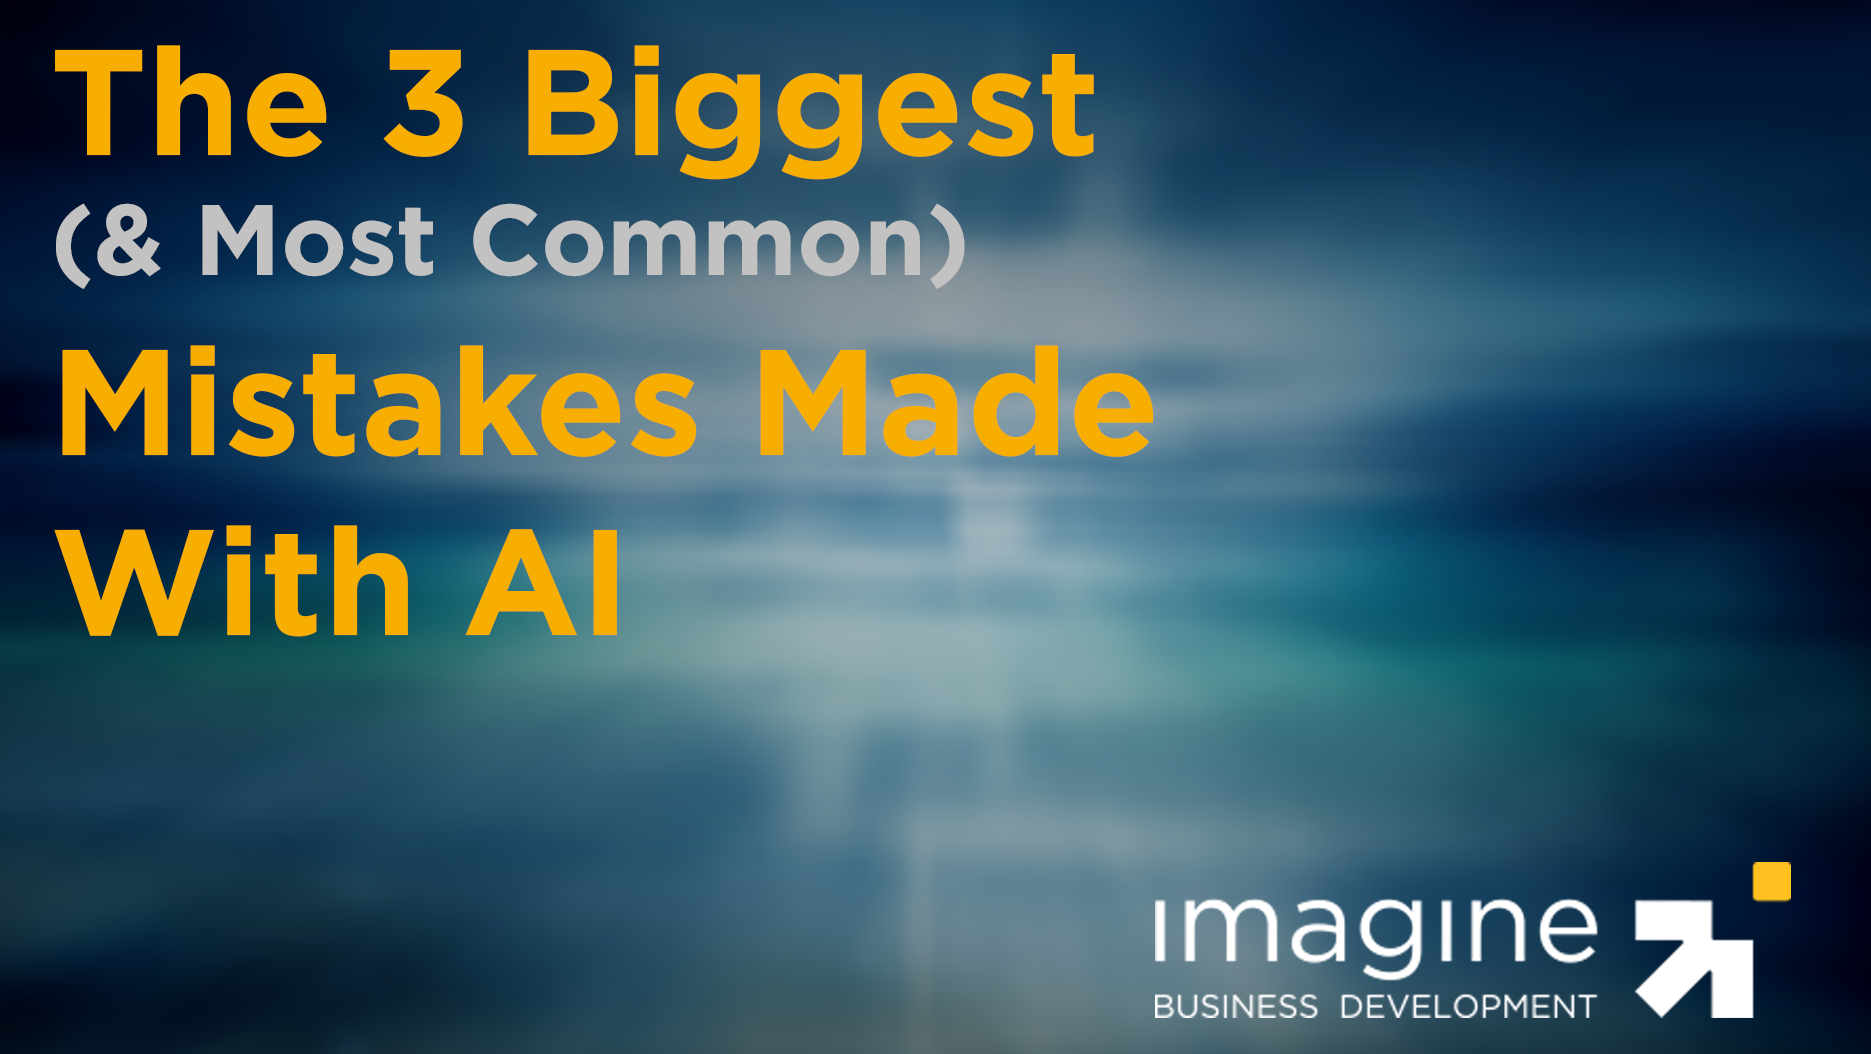 The 3 Biggest Mistakes Made with AI